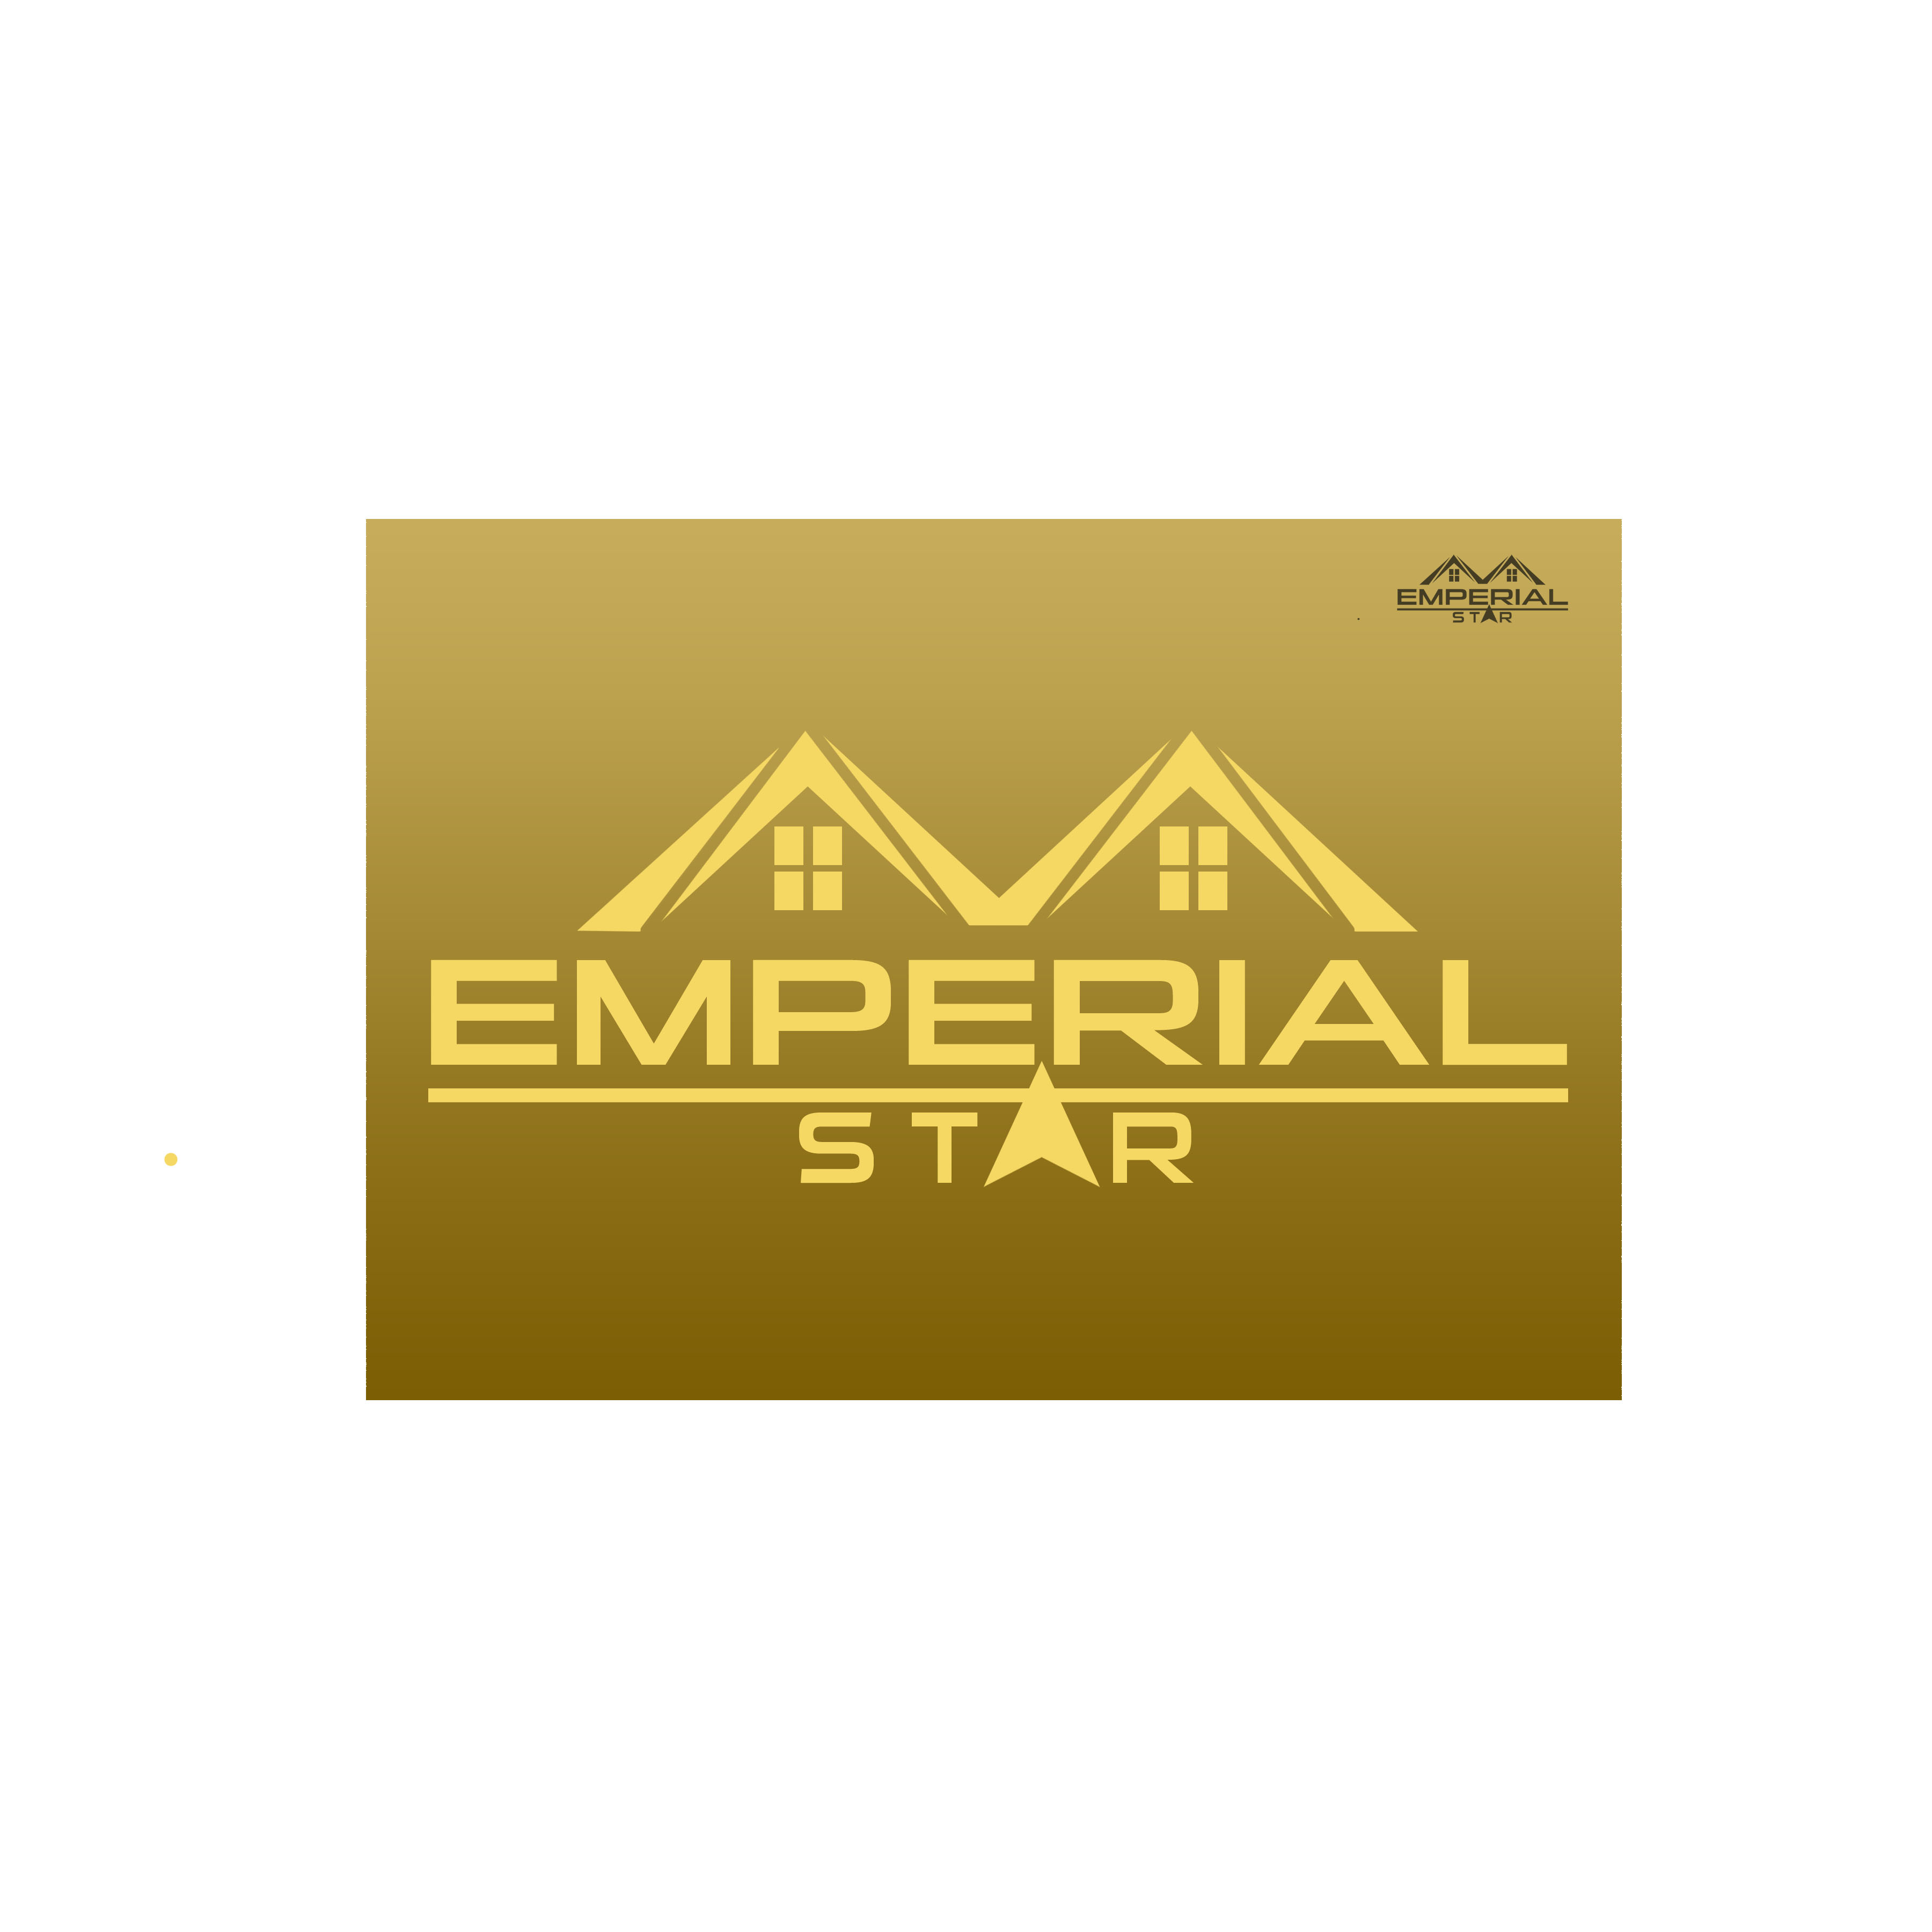 Logo Design by Alan Esclamado - Entry No. 5 in the Logo Design Contest Emperial Star Logo Design.